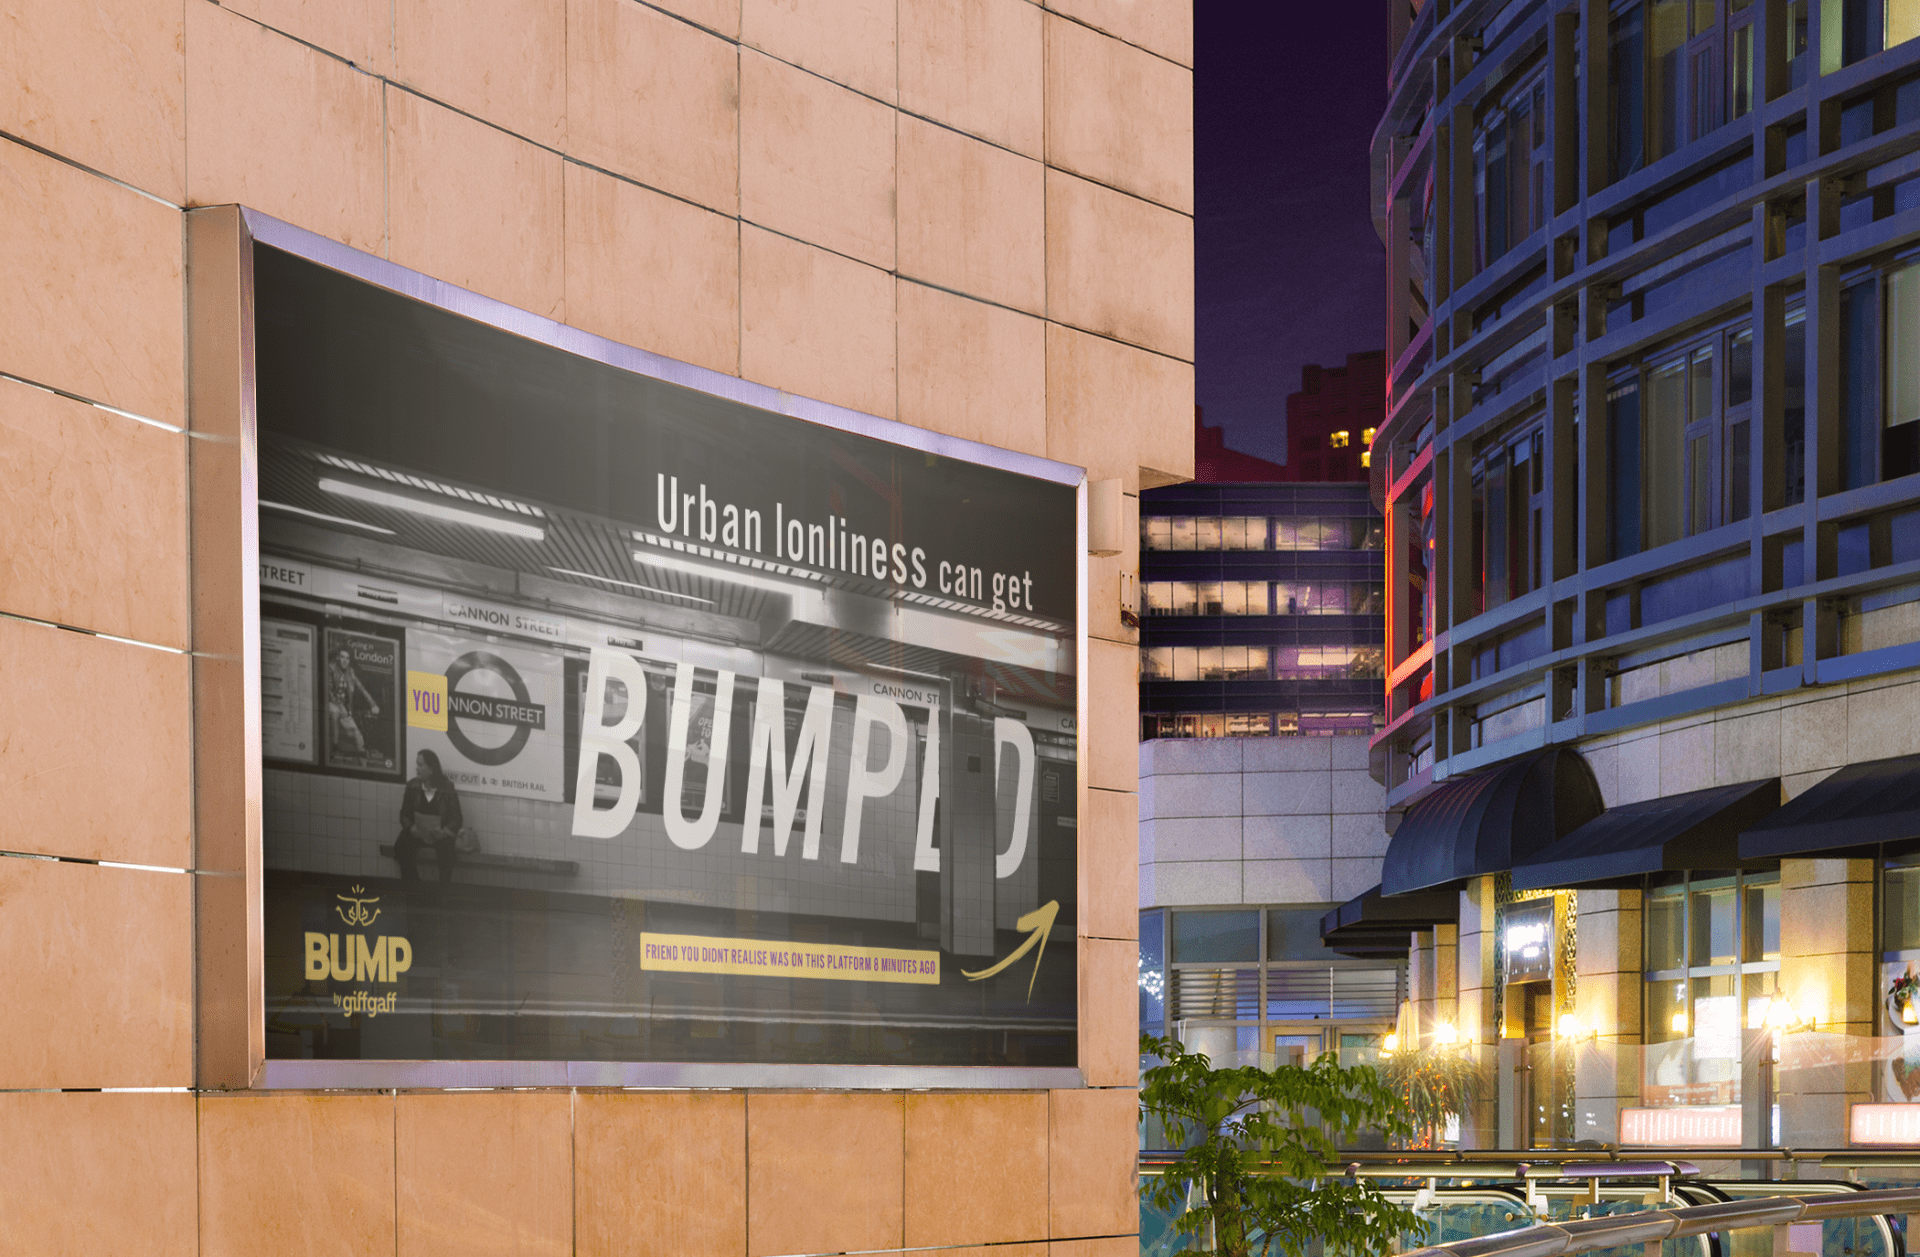 Digitally rendered advert of 'bump' campaign on a poster in a city